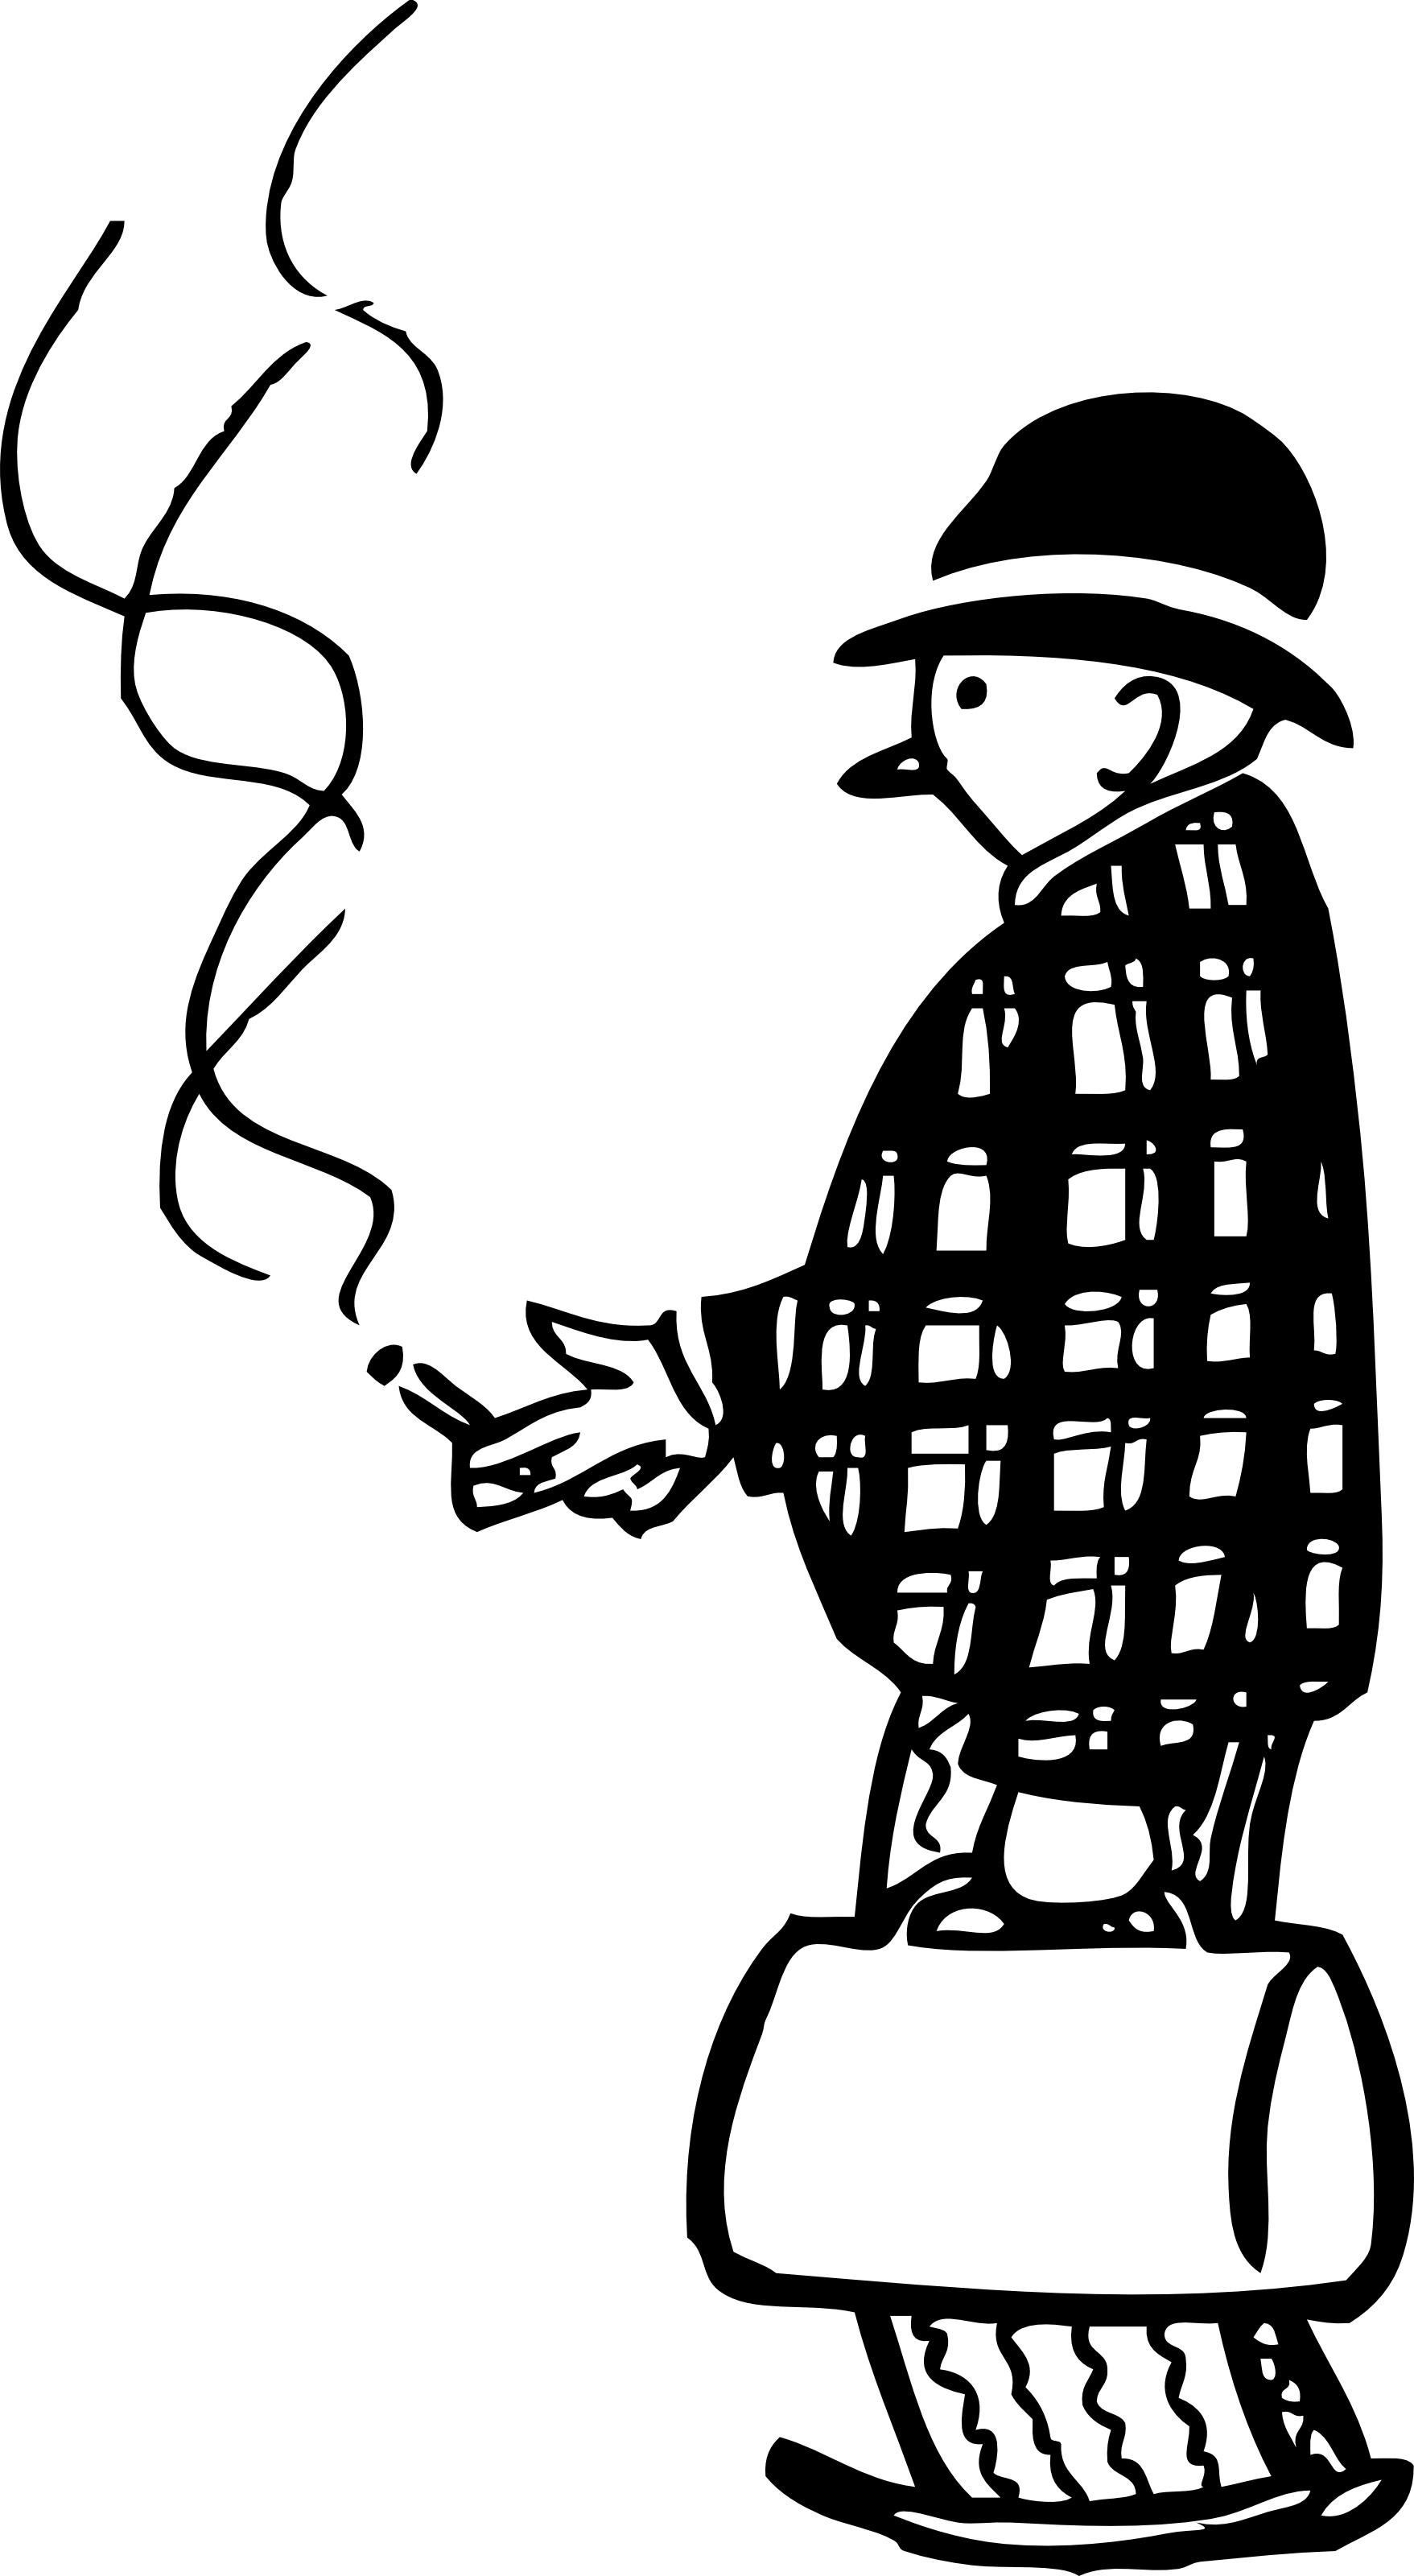 Smoking clipart #11, Download drawings